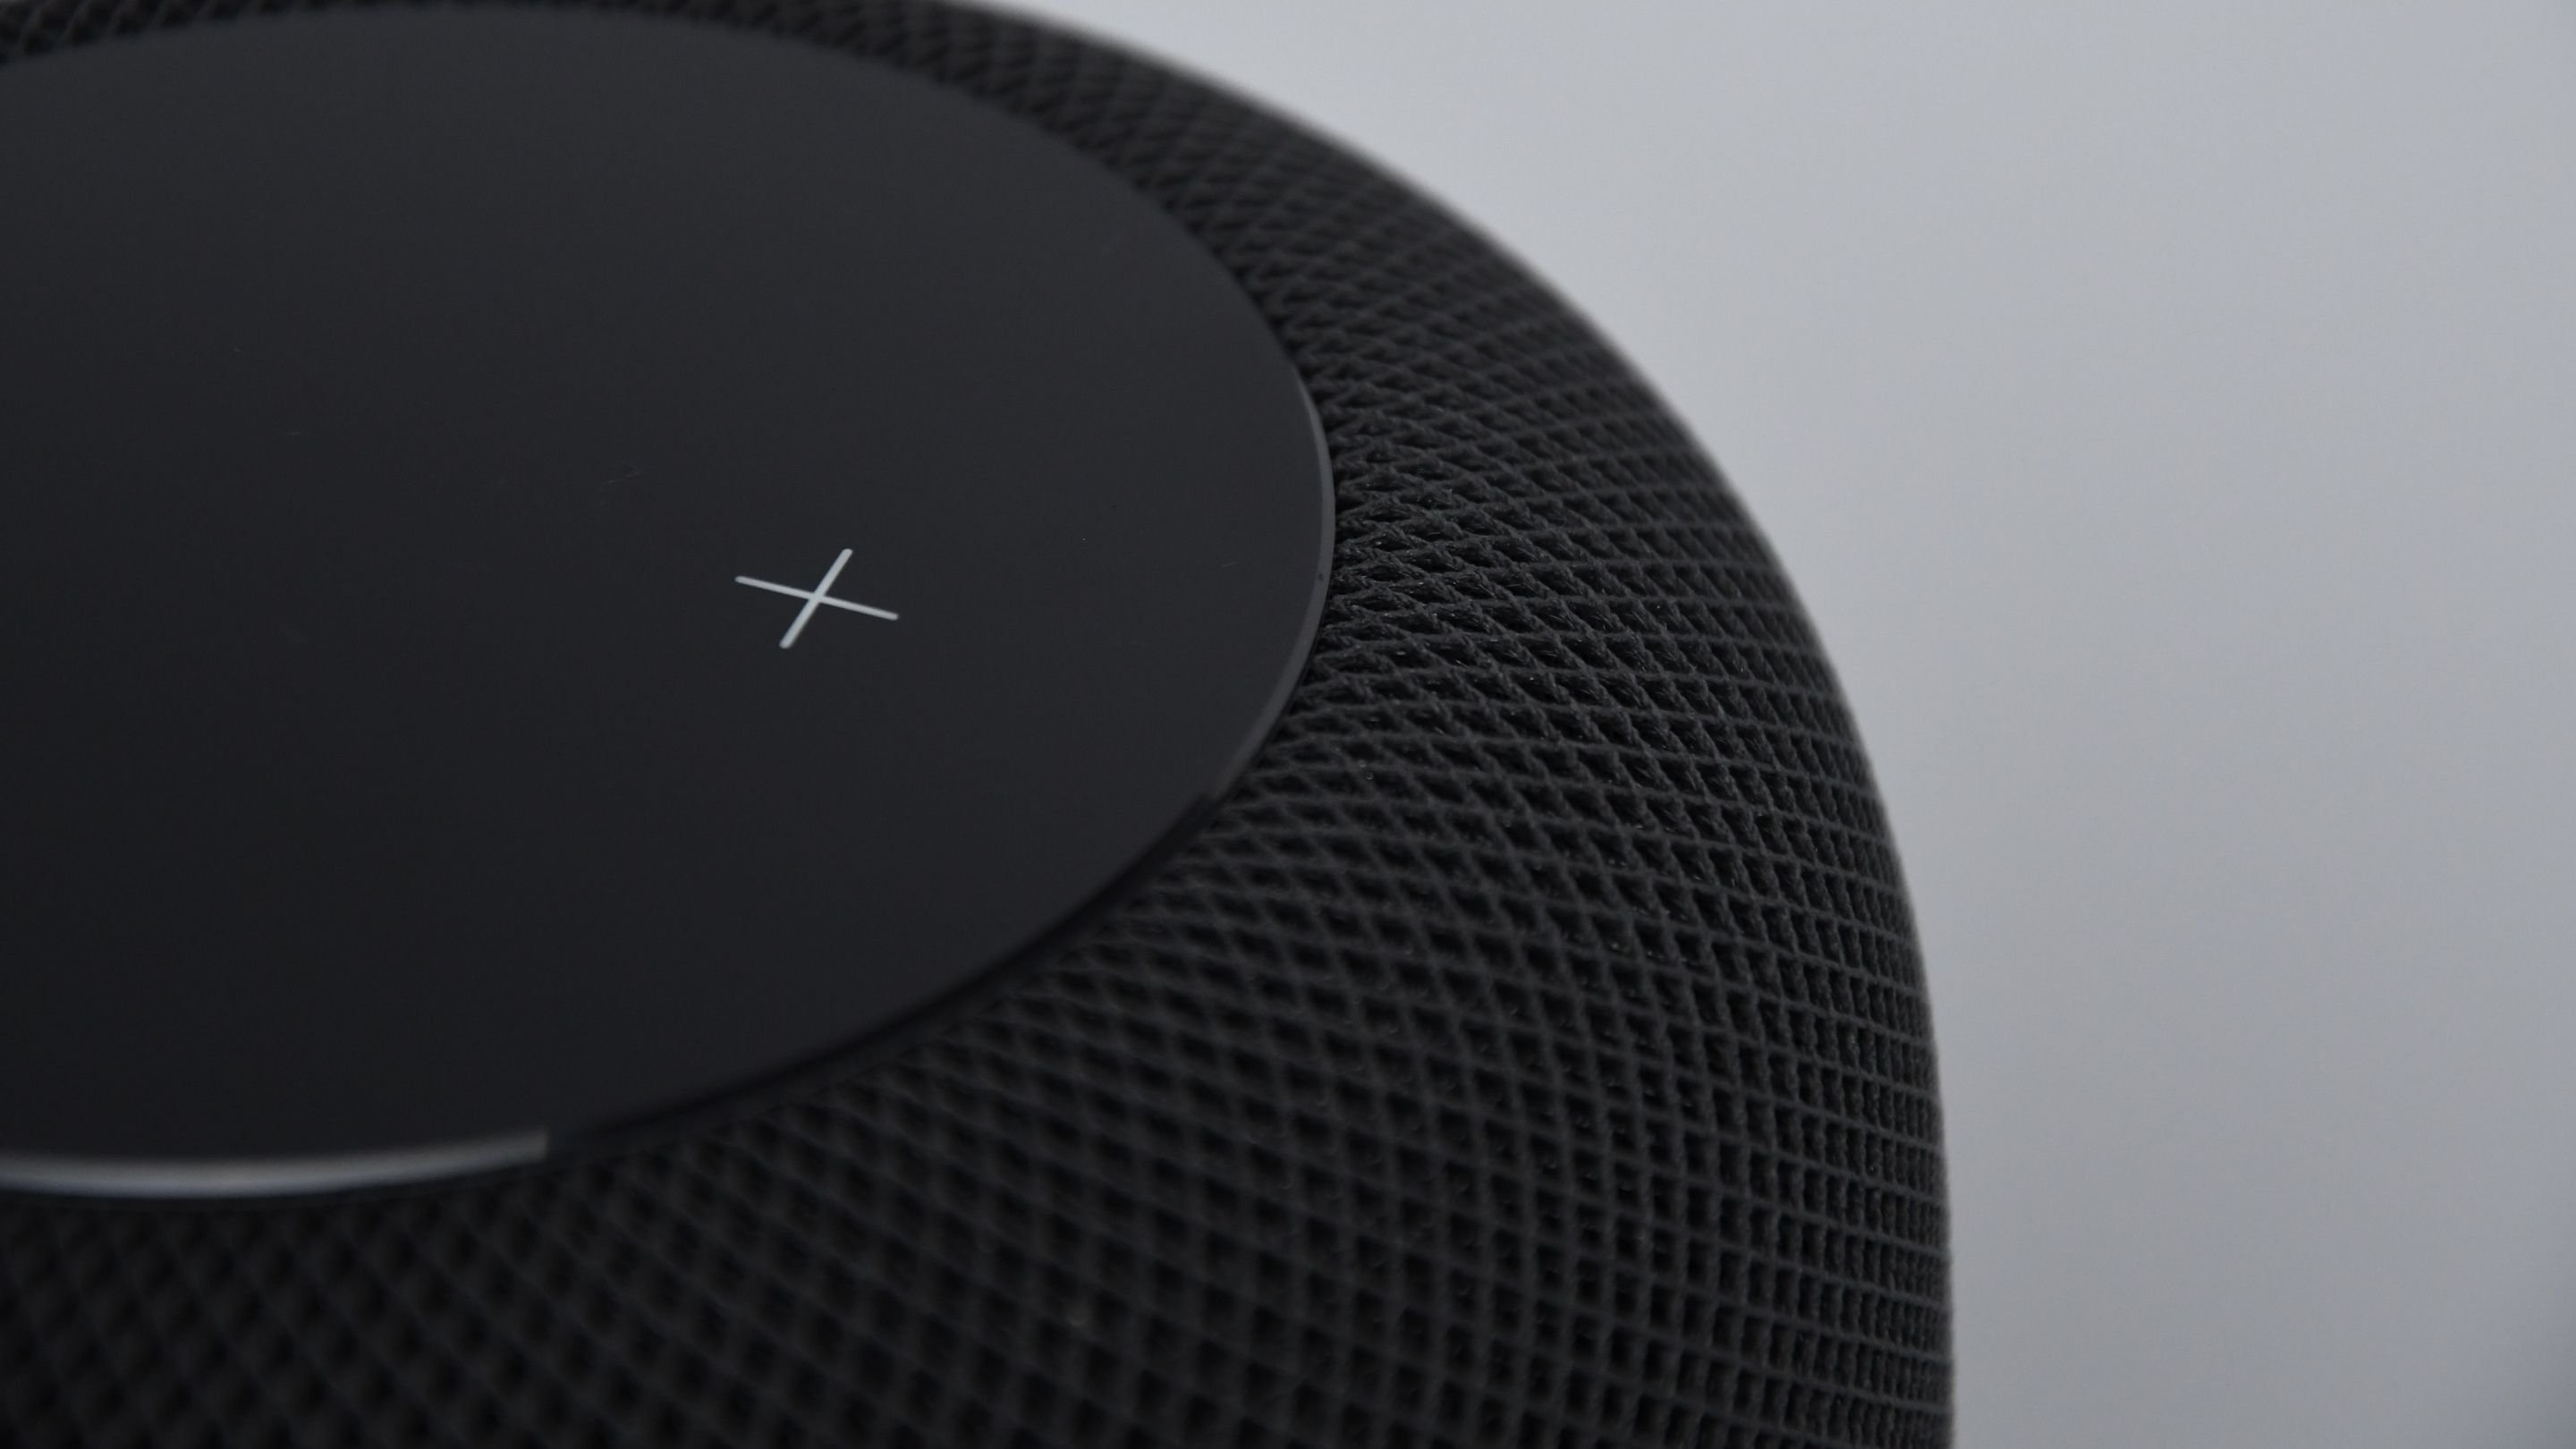 WHY VOICE RECOGNITION COULD BE THE SAFEST SECURITY OPTION